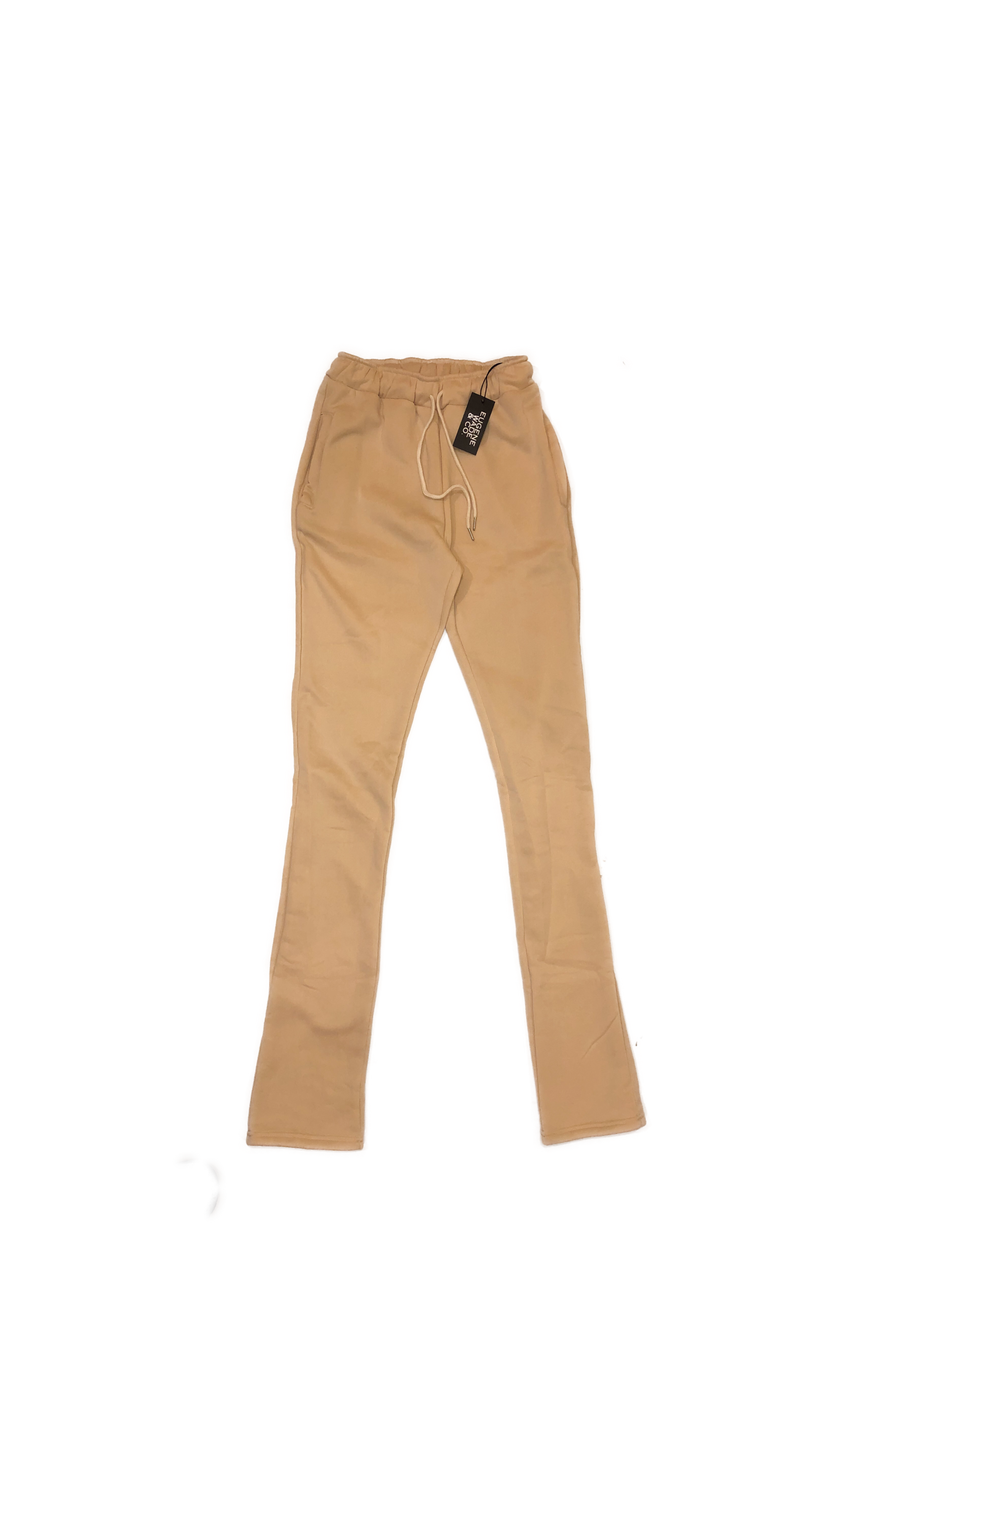 STACKED PANTS (Beige)